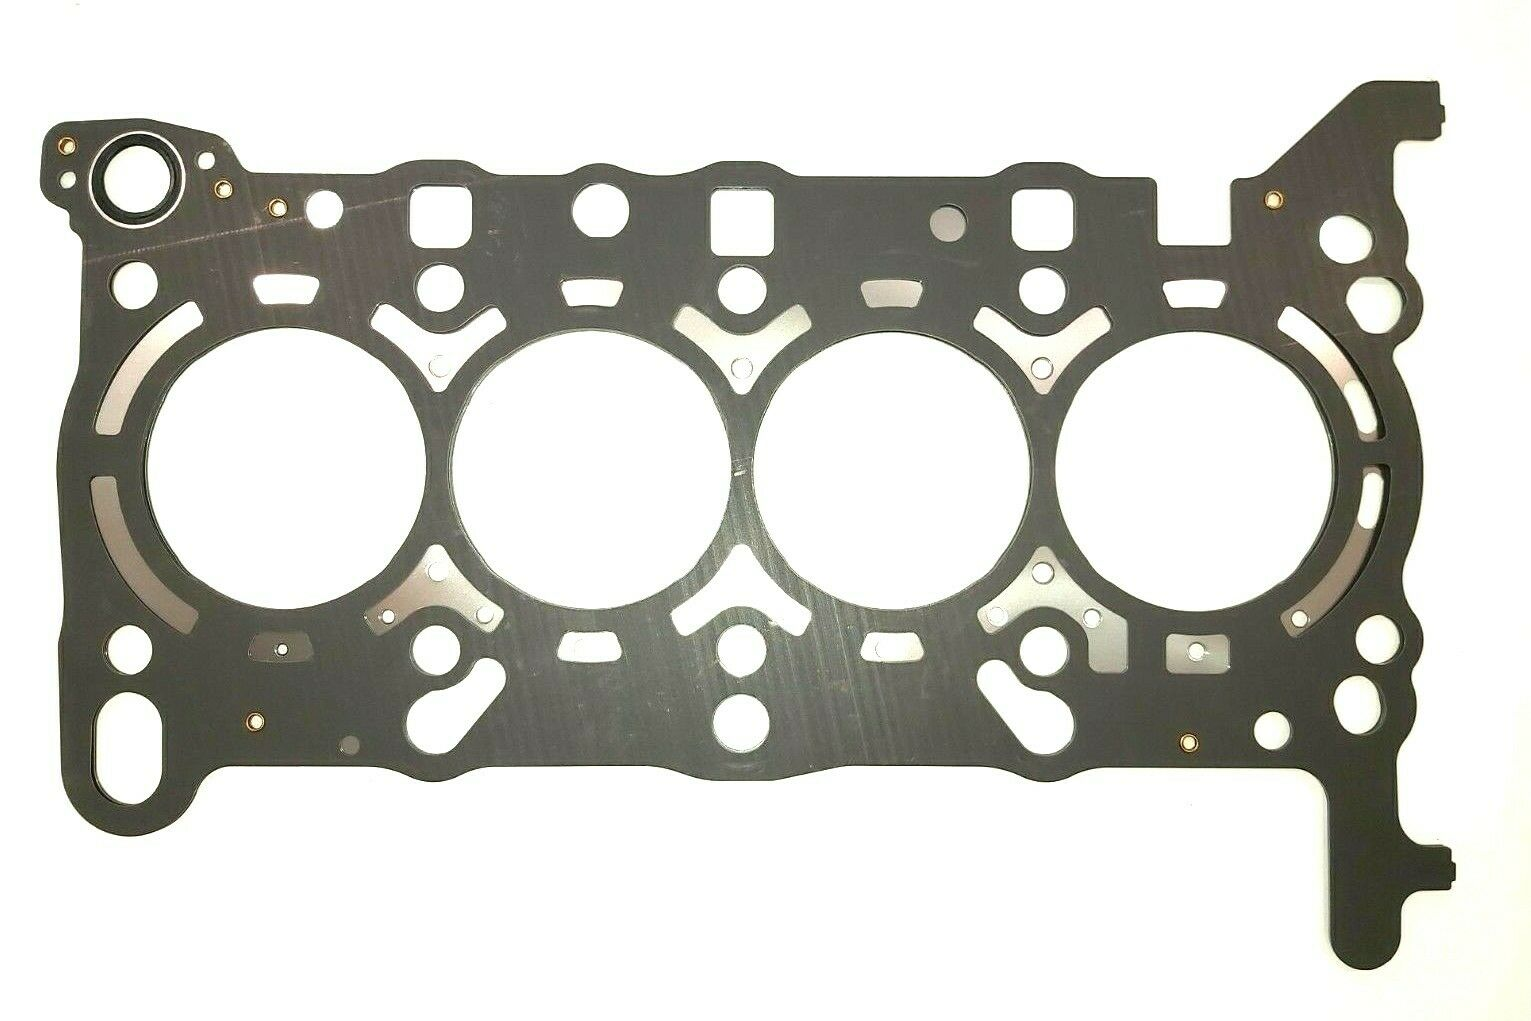 Vauxhall Astra K (2016-) Engine Code B14XFT Head Gasket New OE Part 12663440*